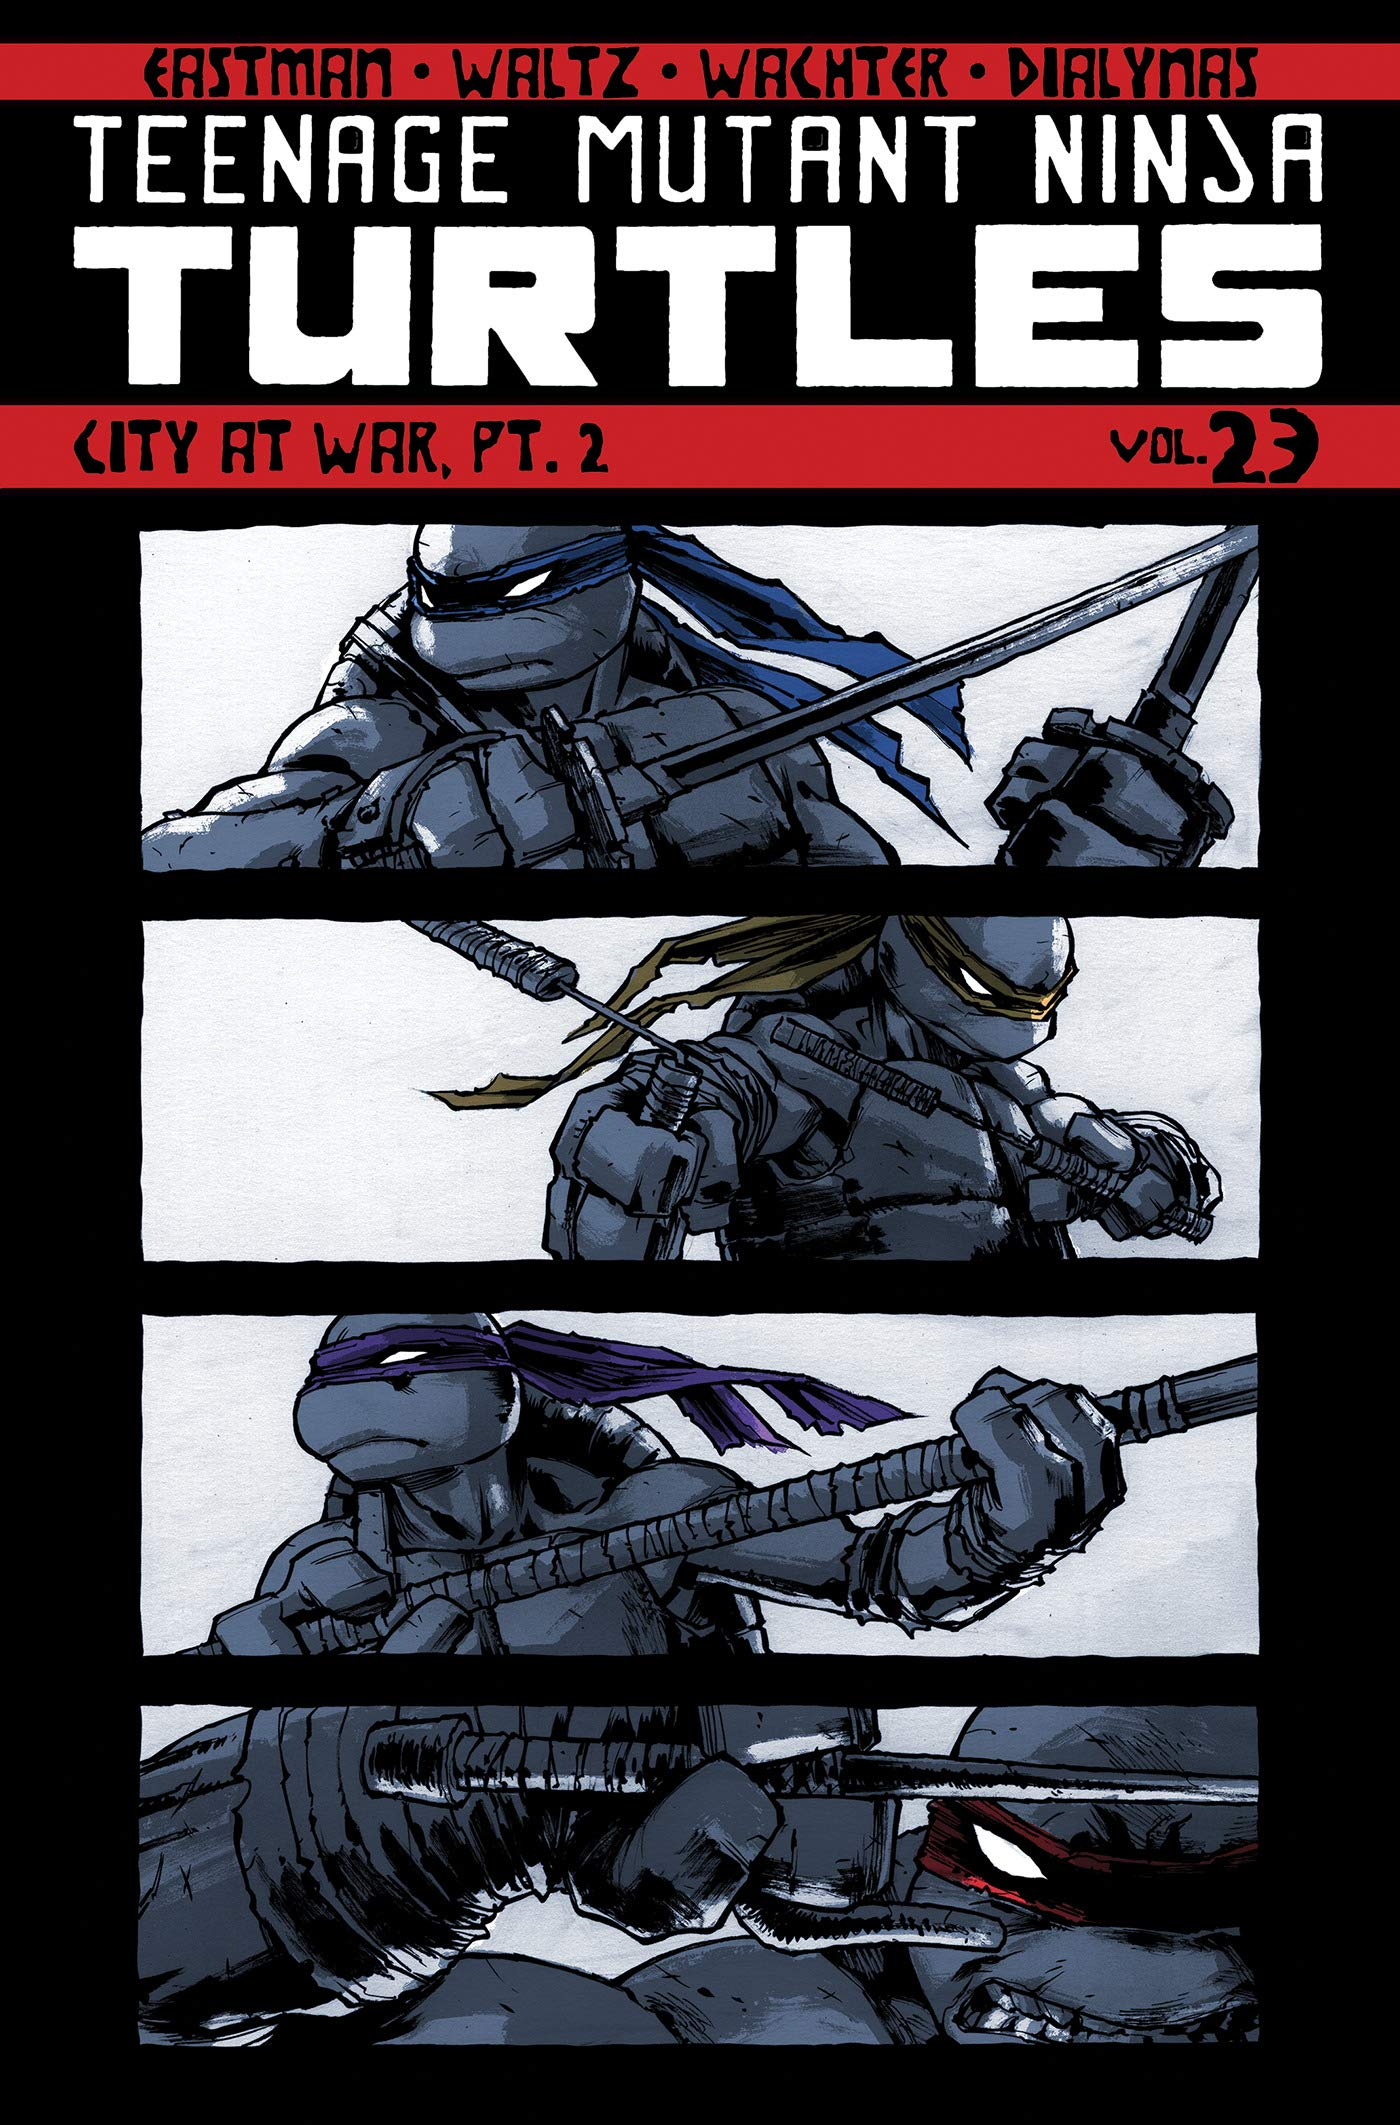 Teenage Mutant Ninja Turtles Volume 23: City At War, Pt. 2 ...